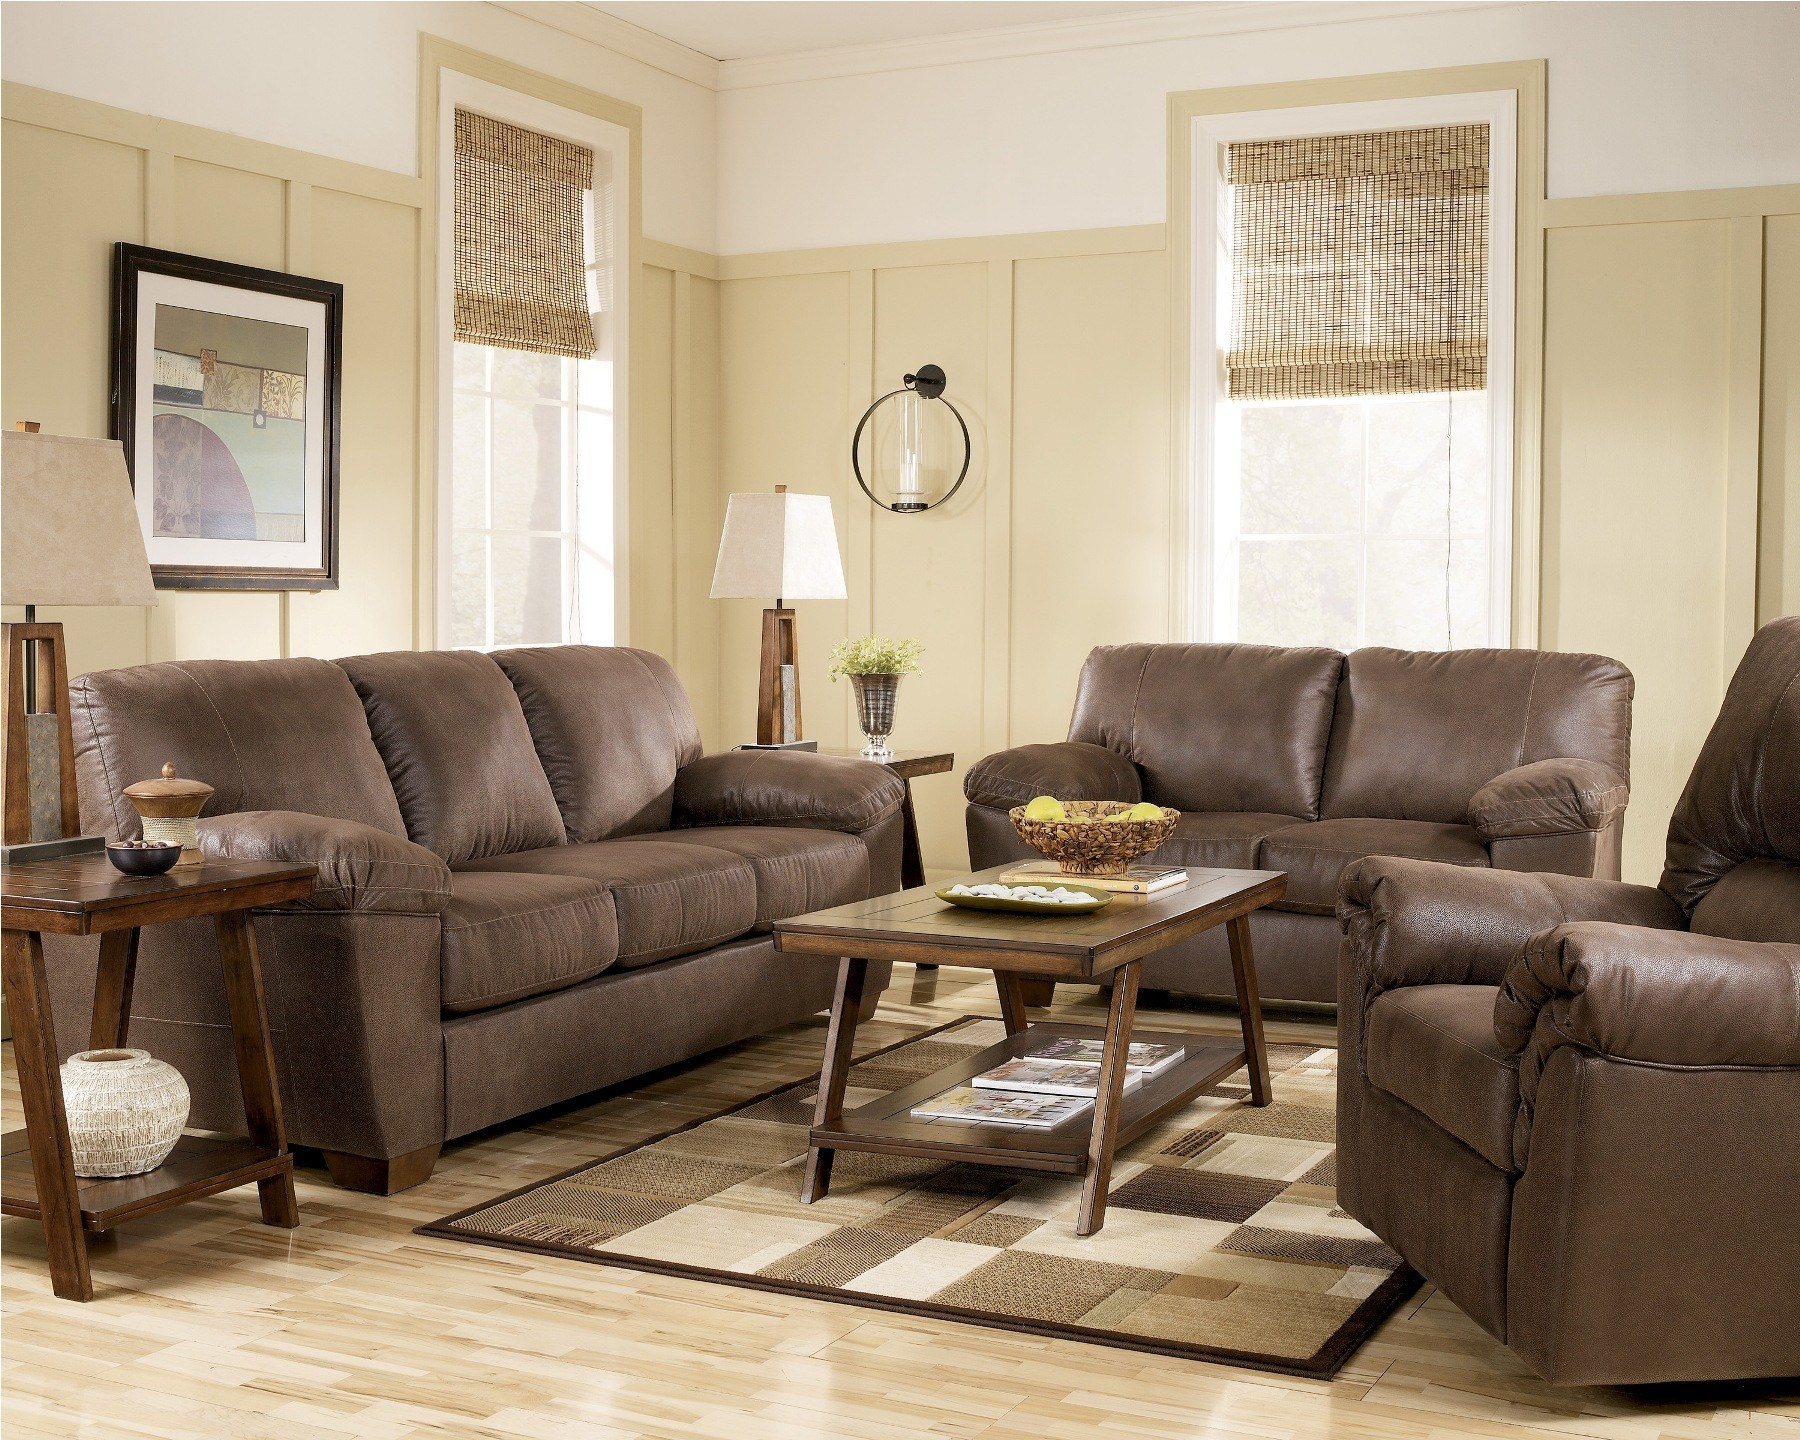 Amazon Walnut Living Room Set from Ashley